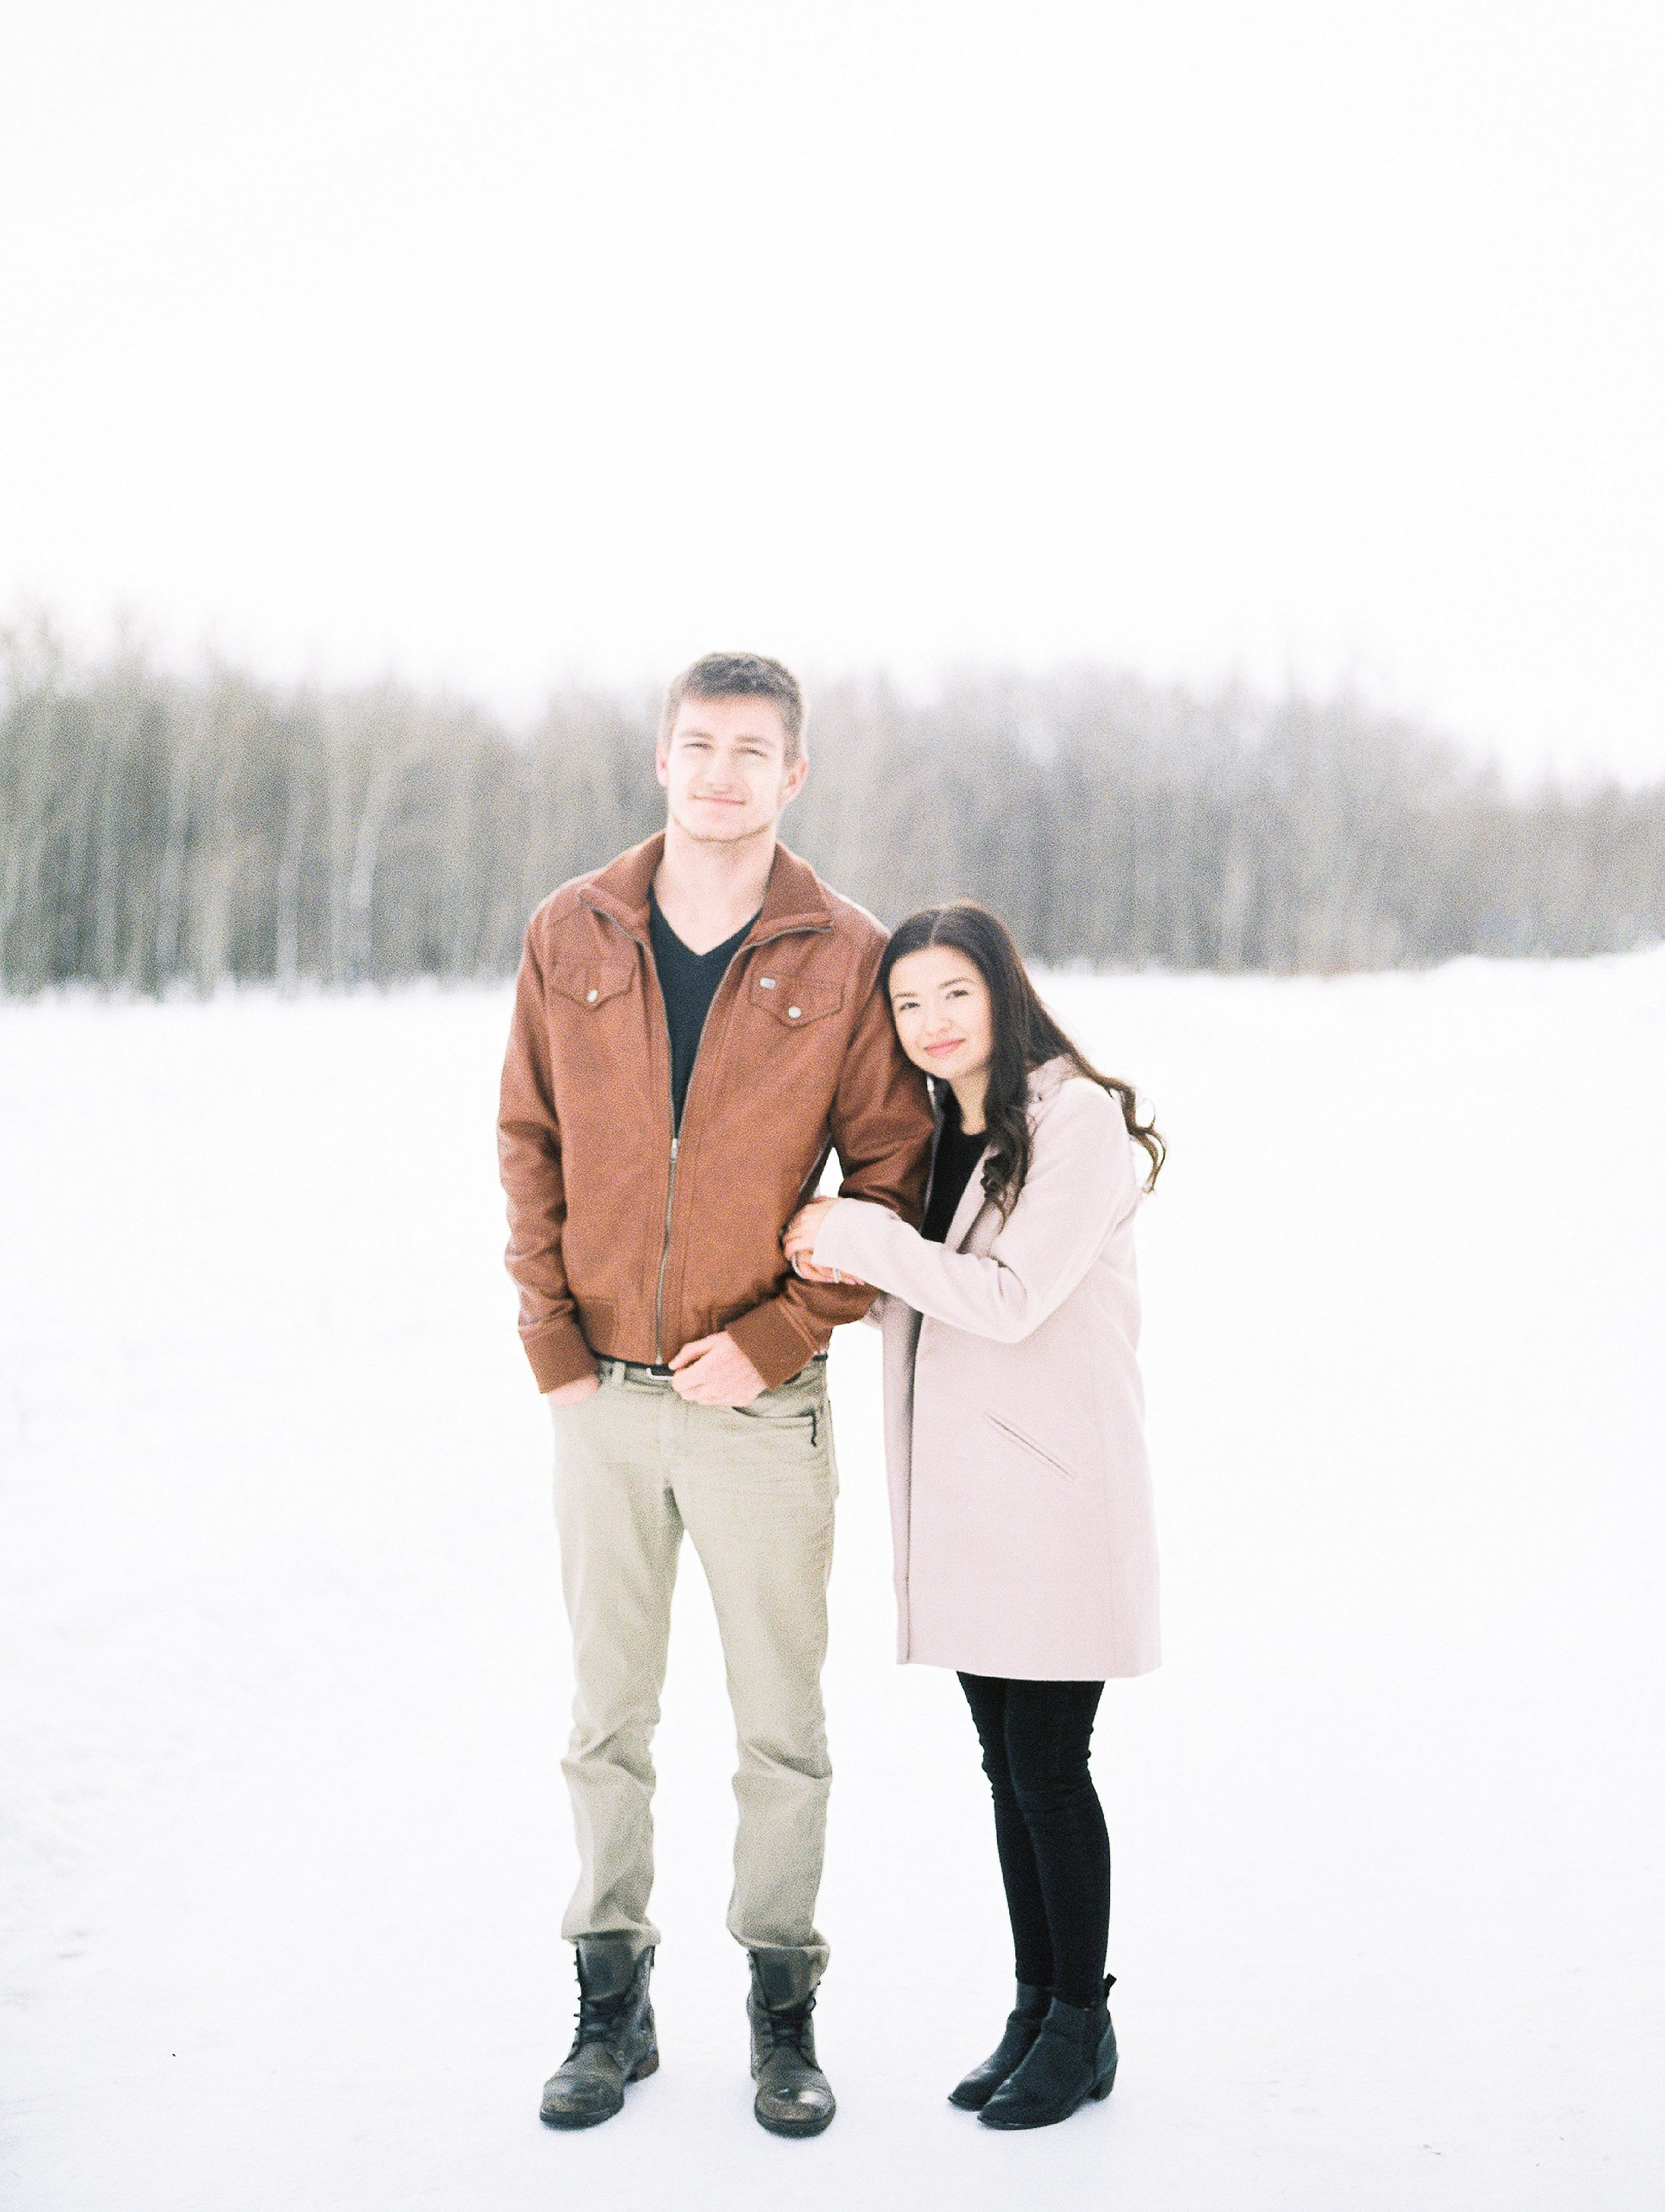 Engagement session ideas - Keila Marie Photography - Winnipeg Film Photographer